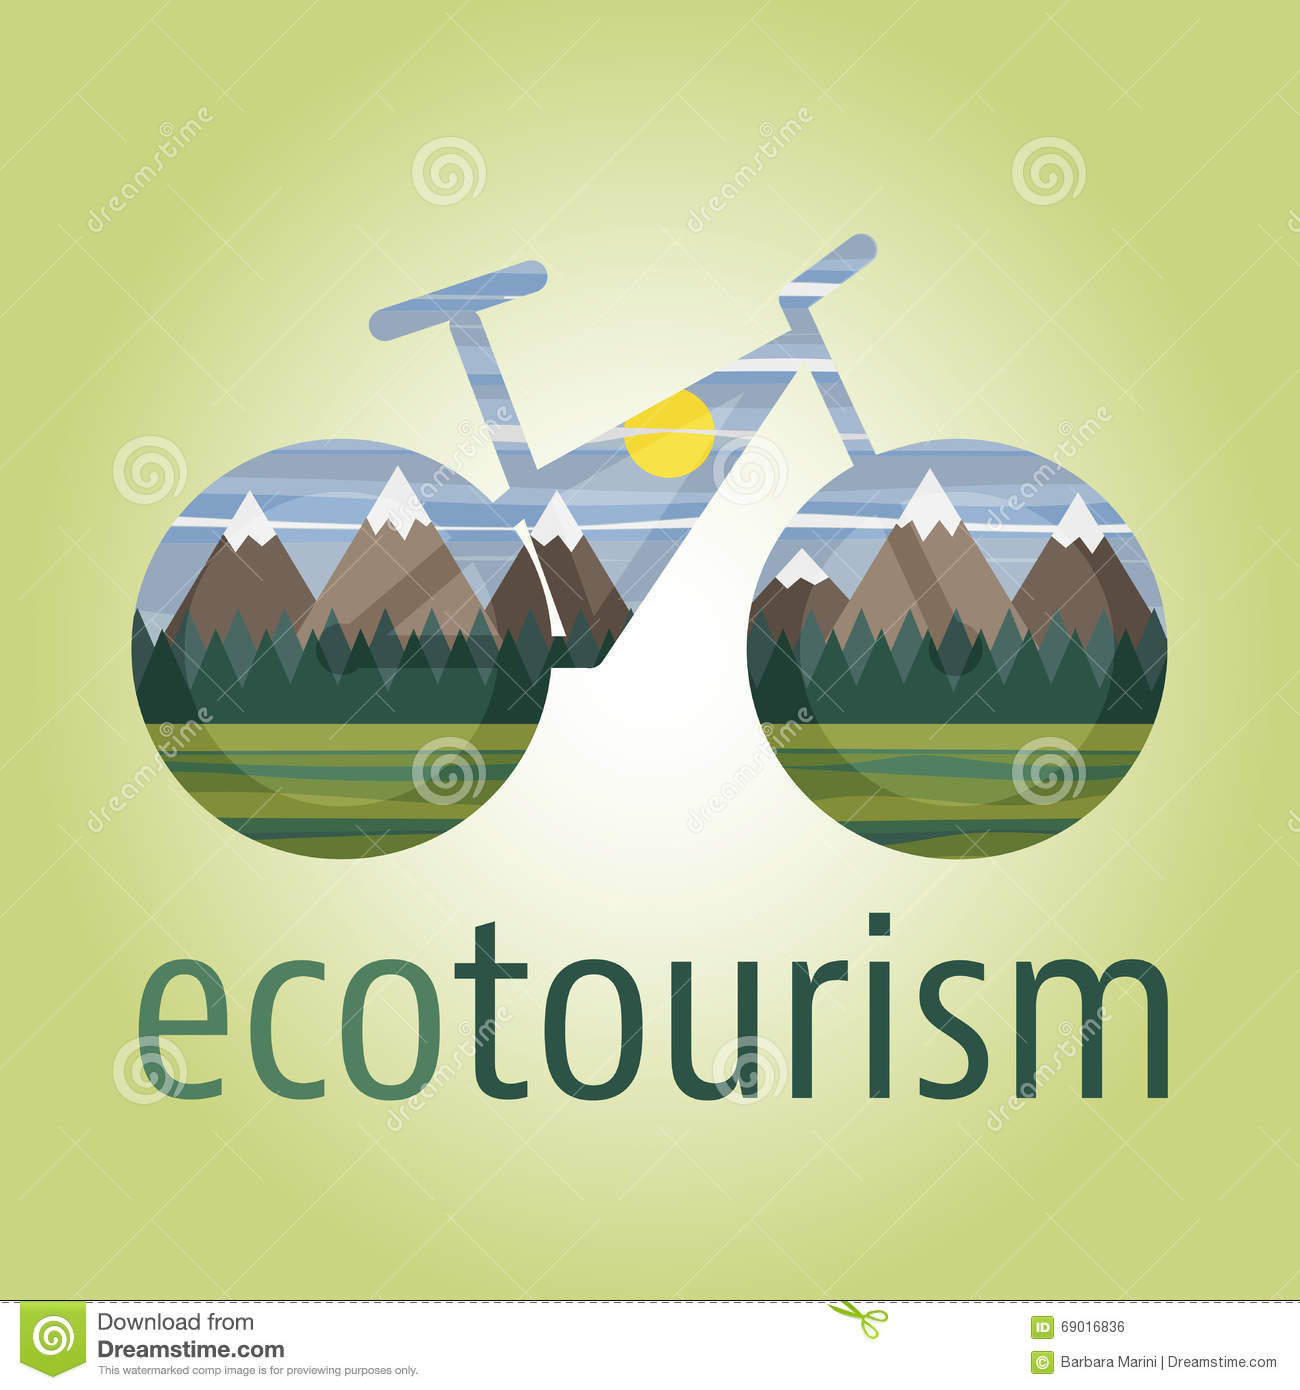 Eco Tourism clipart #15, Download drawings